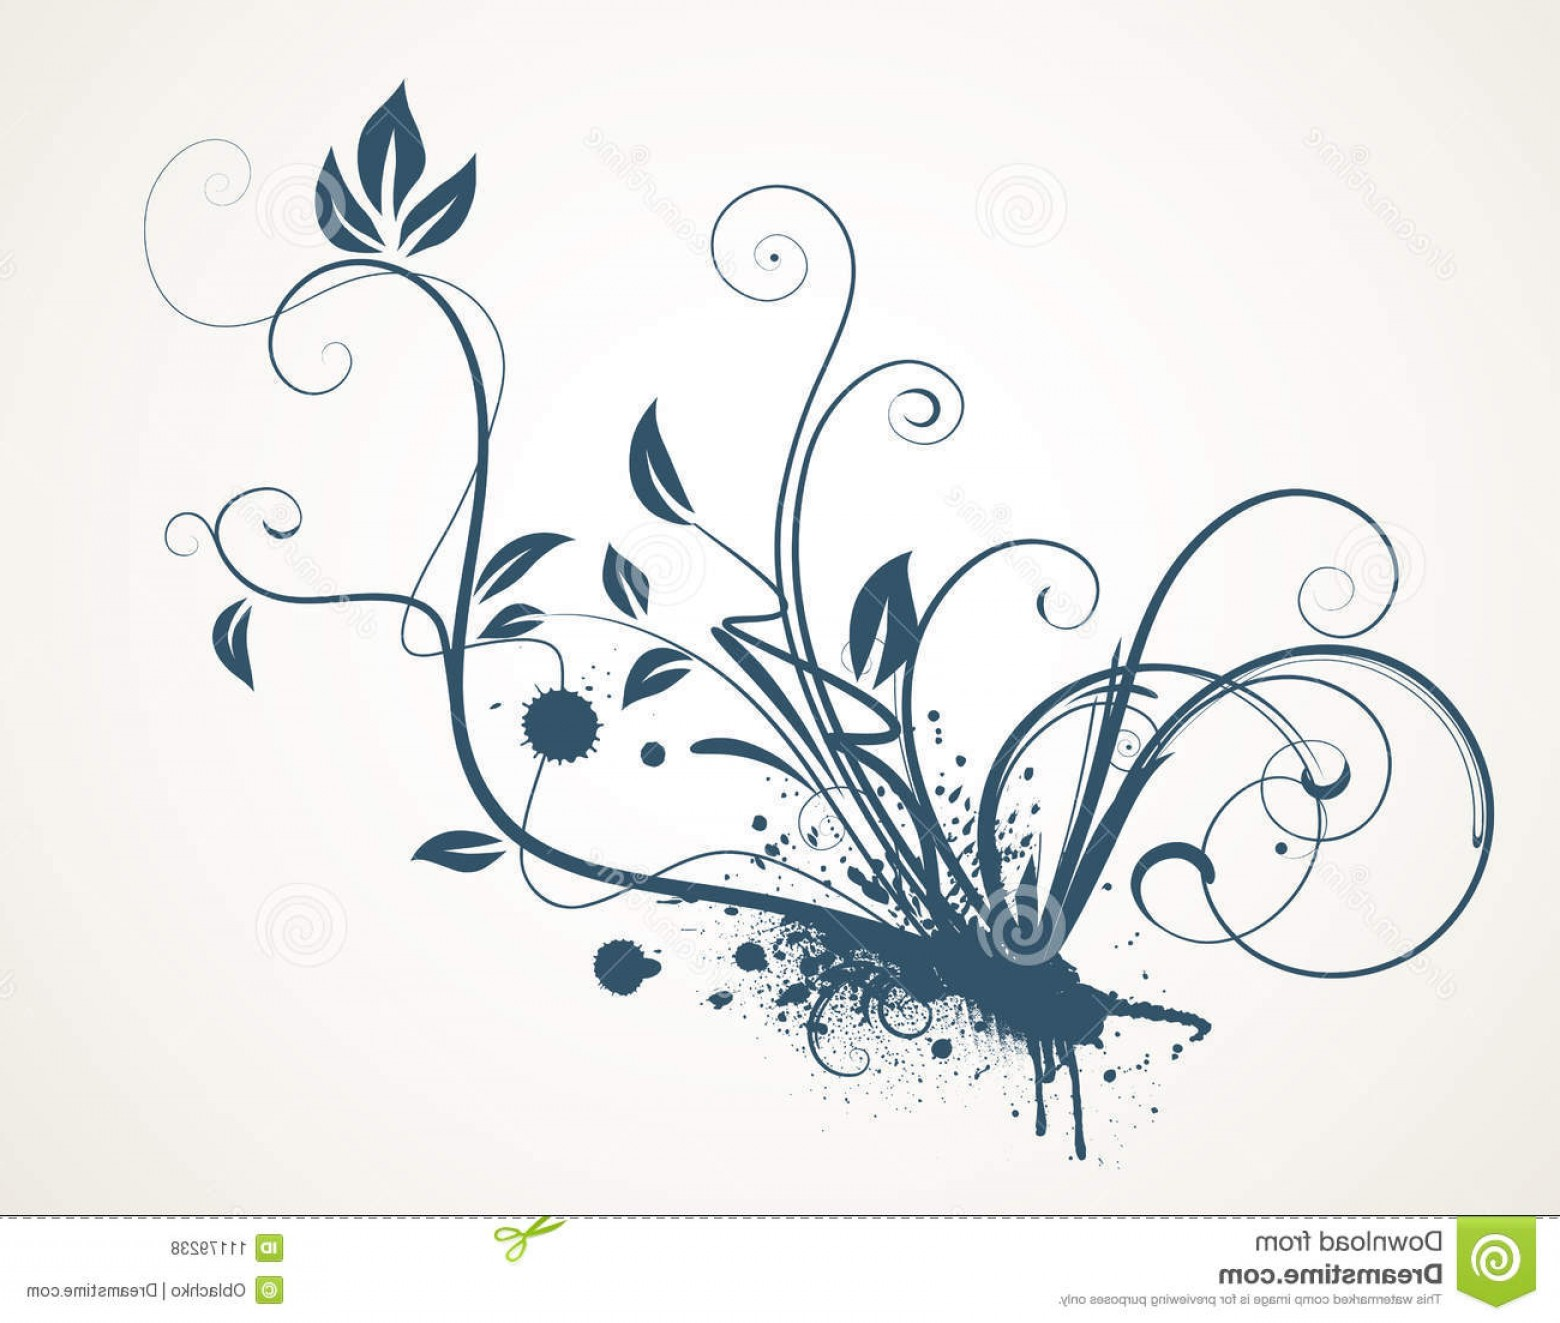 Grunge Scroll Vector Design: Royalty Free Stock Photos Decorative Scroll Design Image